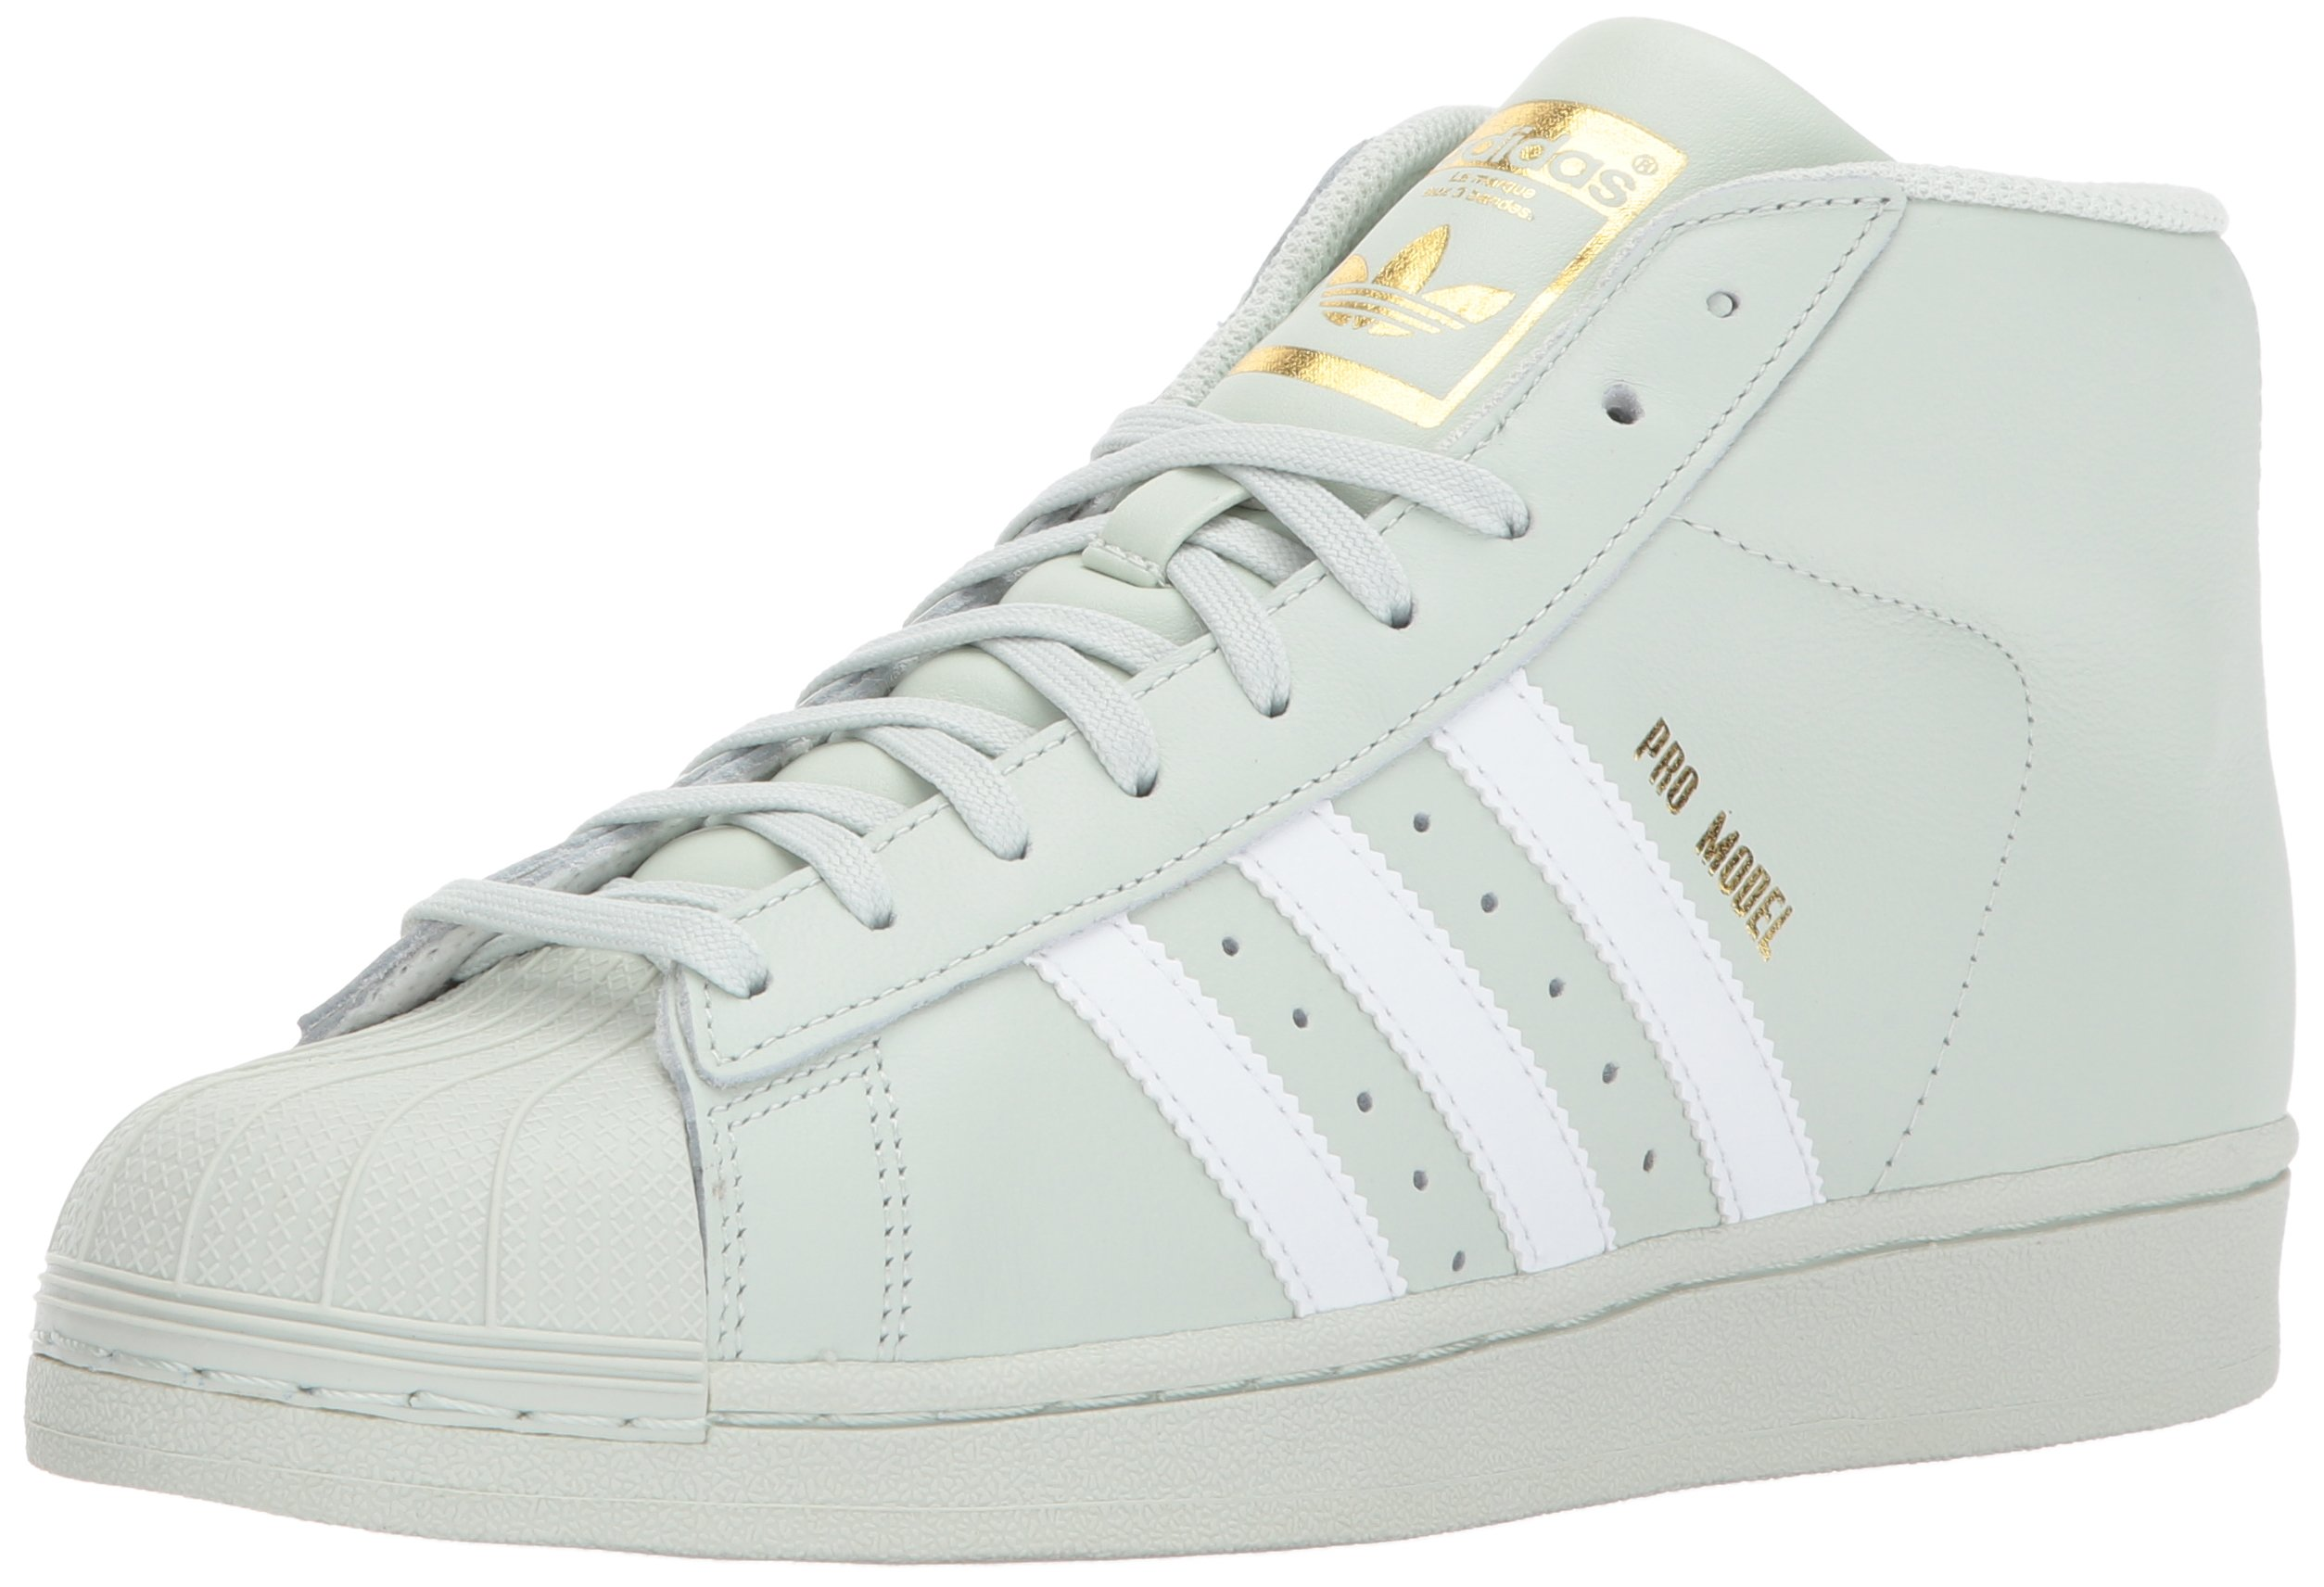 check out f93fa deaee Galleon - Adidas Originals Men s Pro Model Sneaker, Linen Green White Gold  Metallic, 7 M US